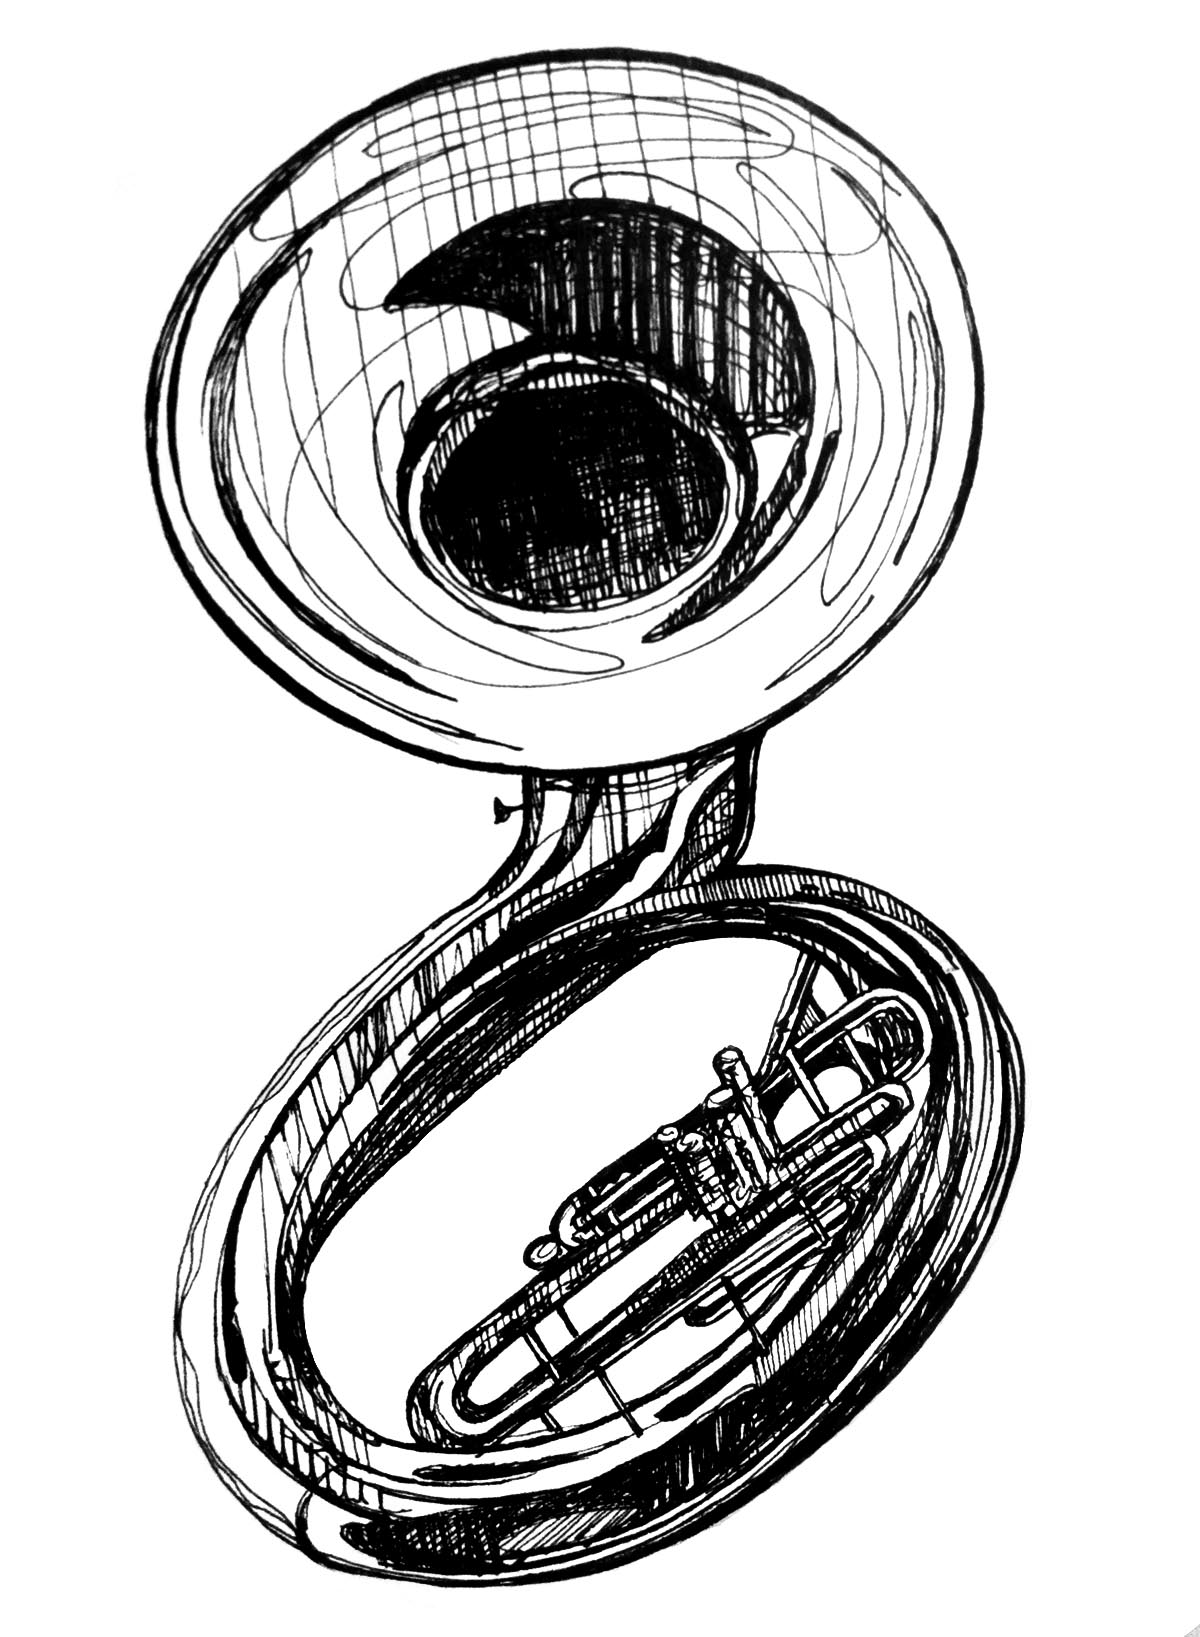 hight resolution of sousaphone cliparts 266024 license personal use